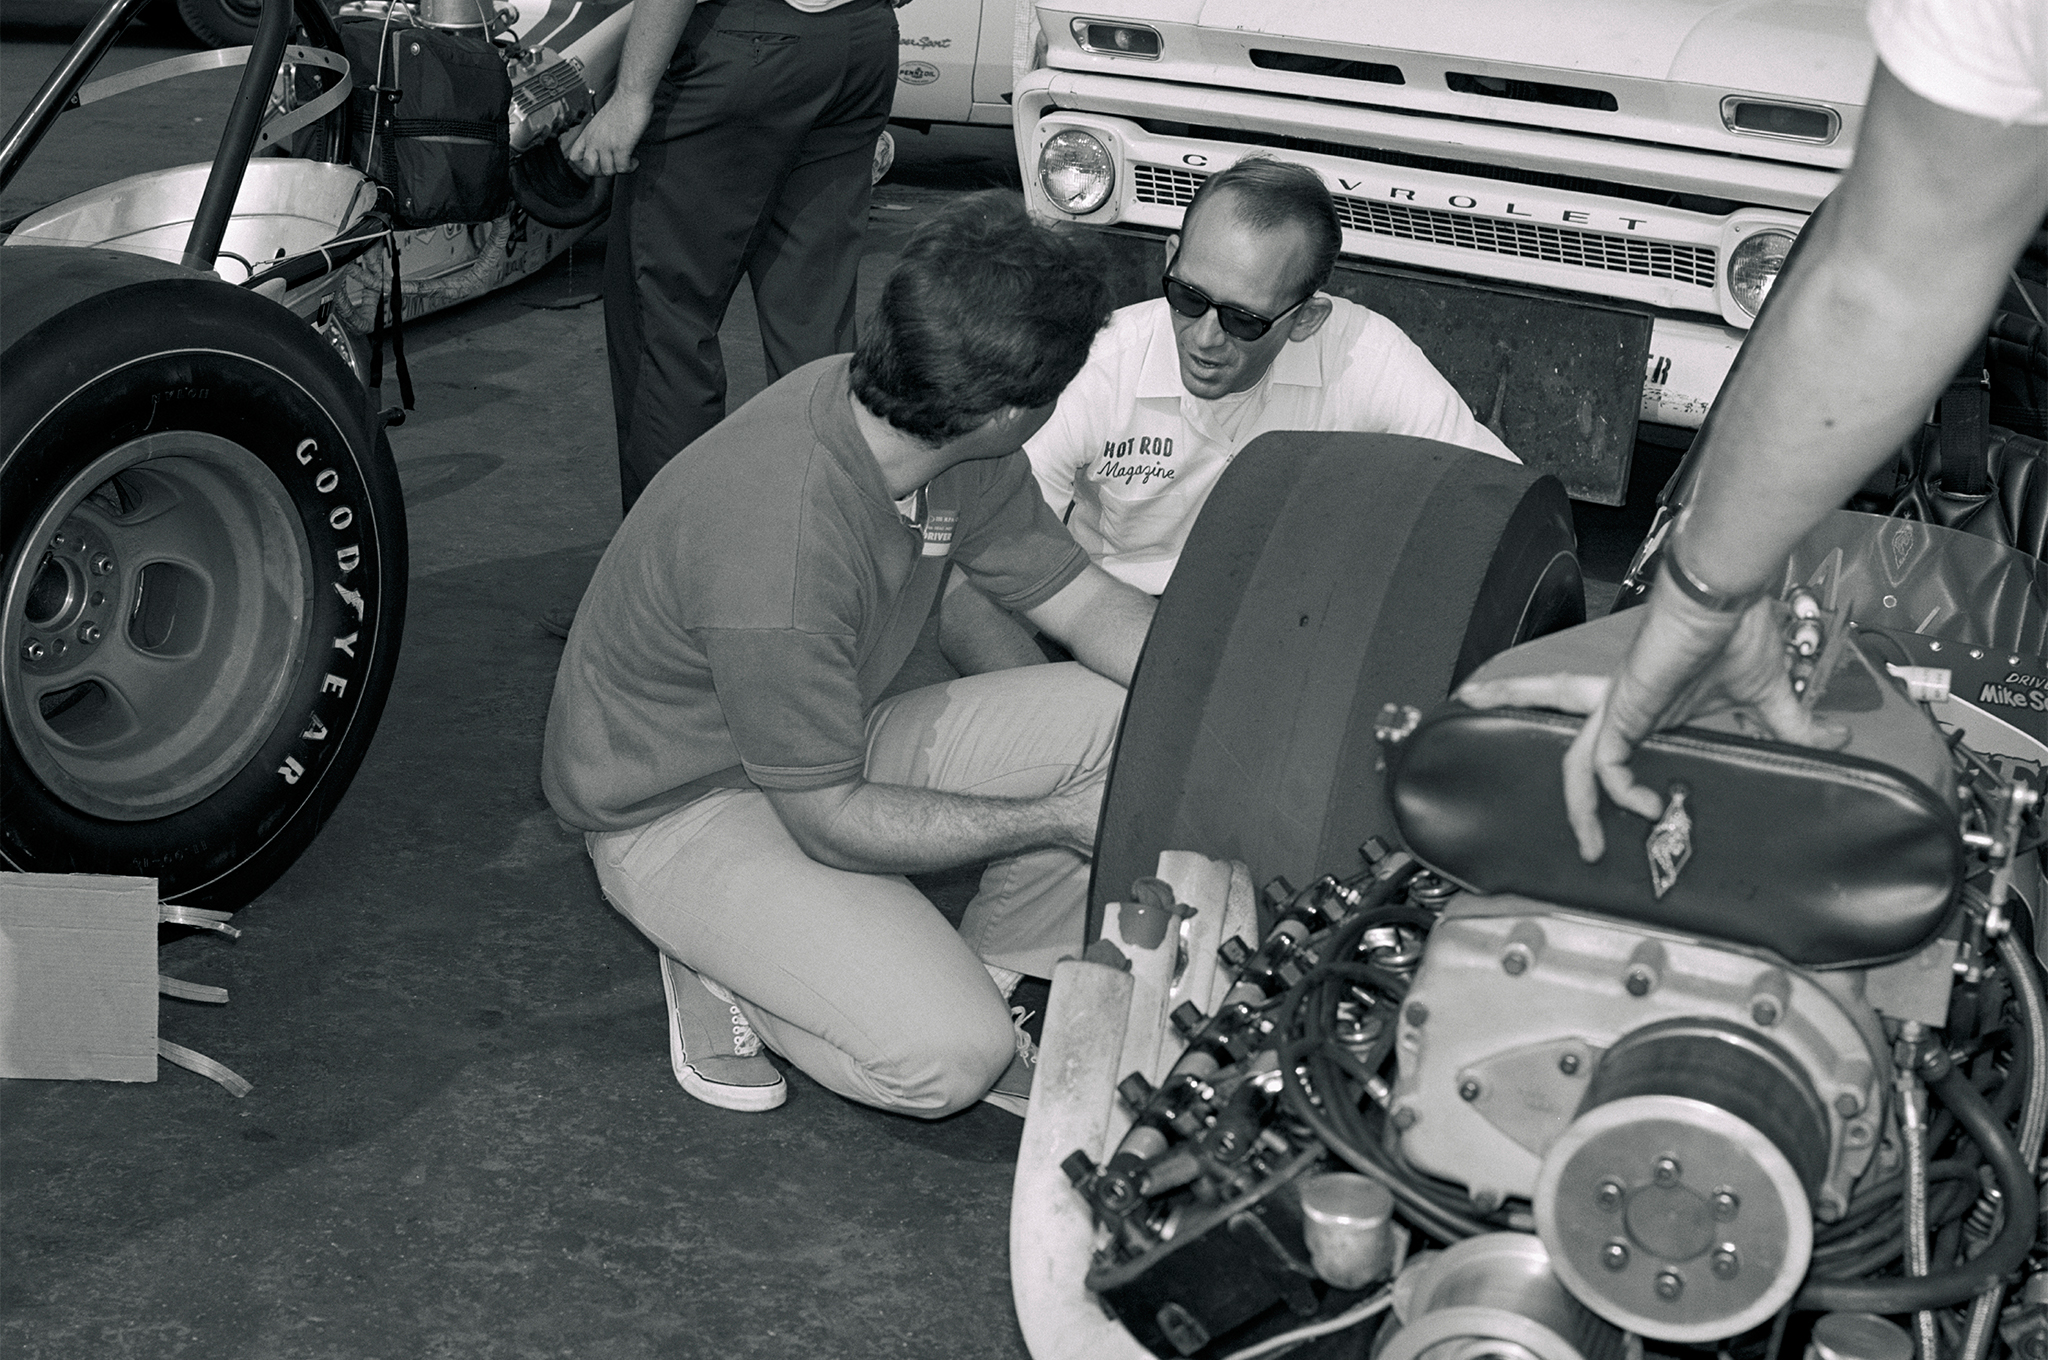 In November 1966, Jim stopped to chat with Mike Sorokin, whose 1967 death following a clutch explosion compelled McFarland to help Paul Schiefer develop safer slider clutches.